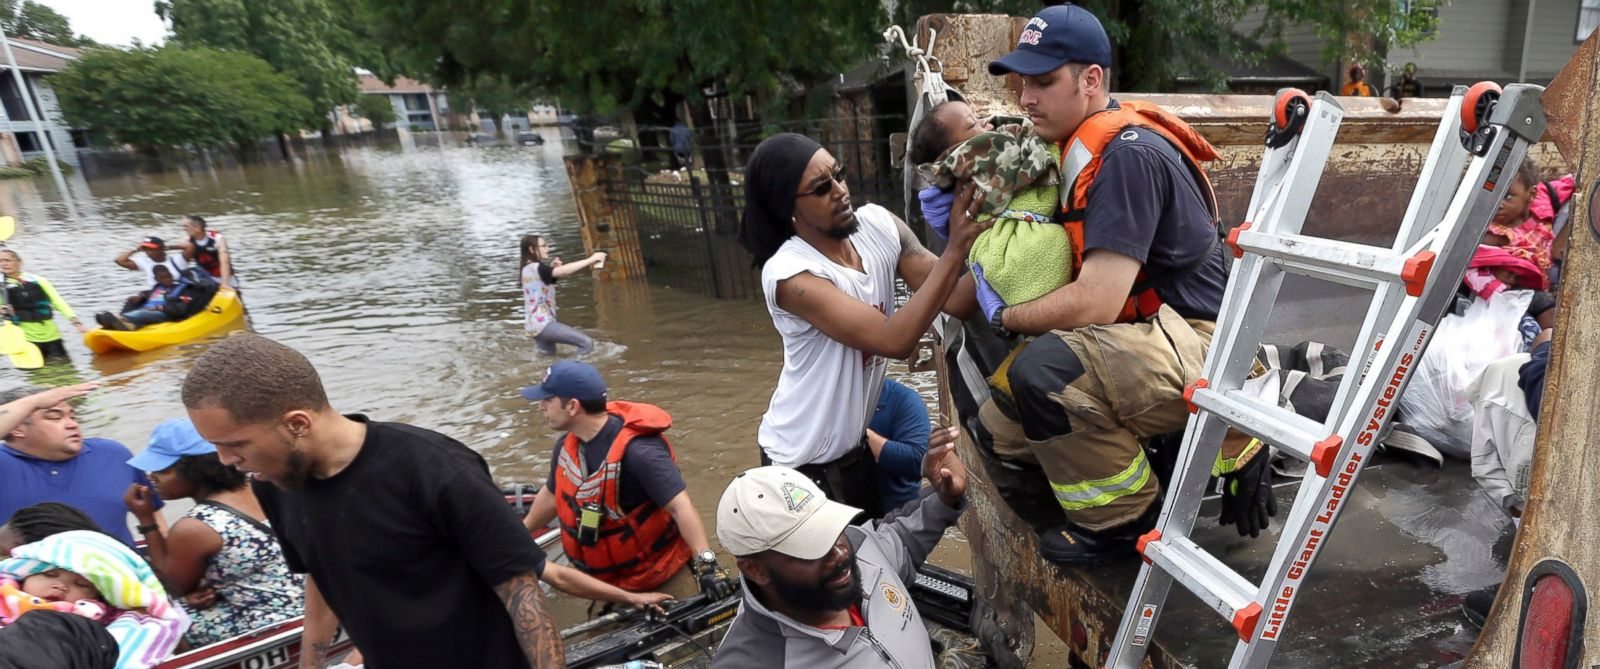 PHOTO: Residents are helped into a dump truck as they evacuate their apartment complex surrounded by floodwaters April 18, 2016, in Houston.